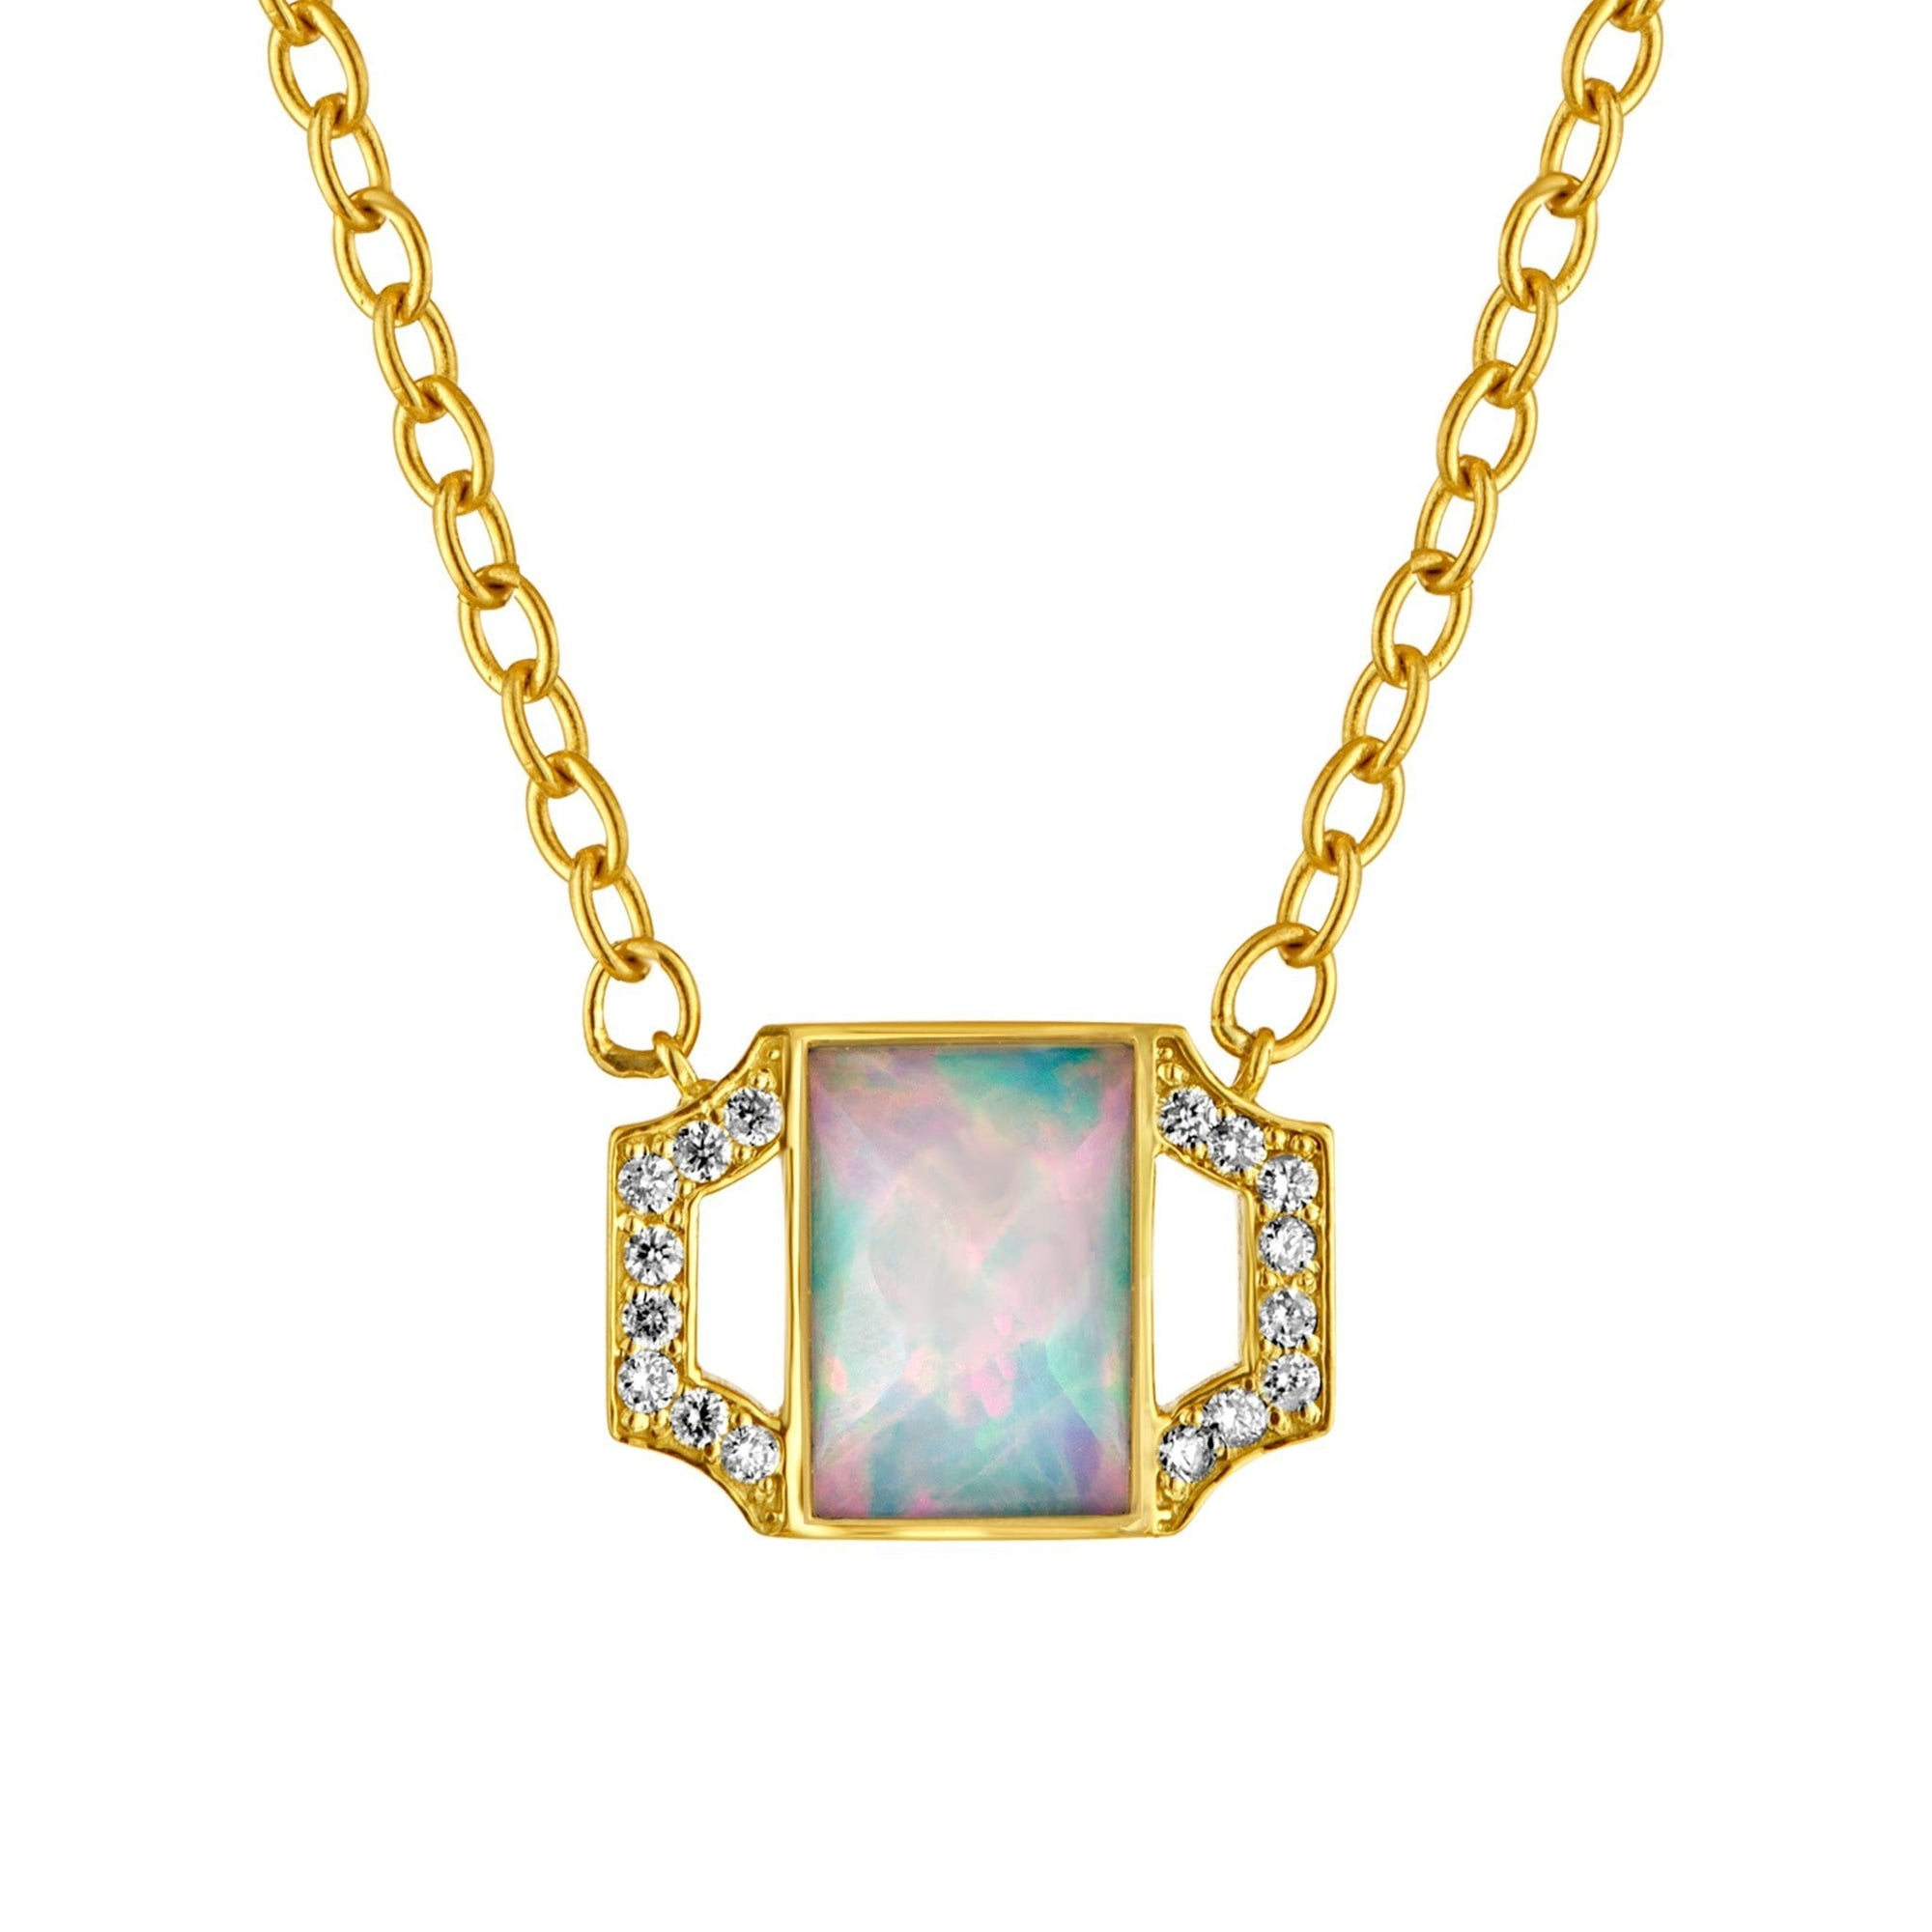 Edge Petite Pendant Necklace: 18k Gold, Opal, Diamonds